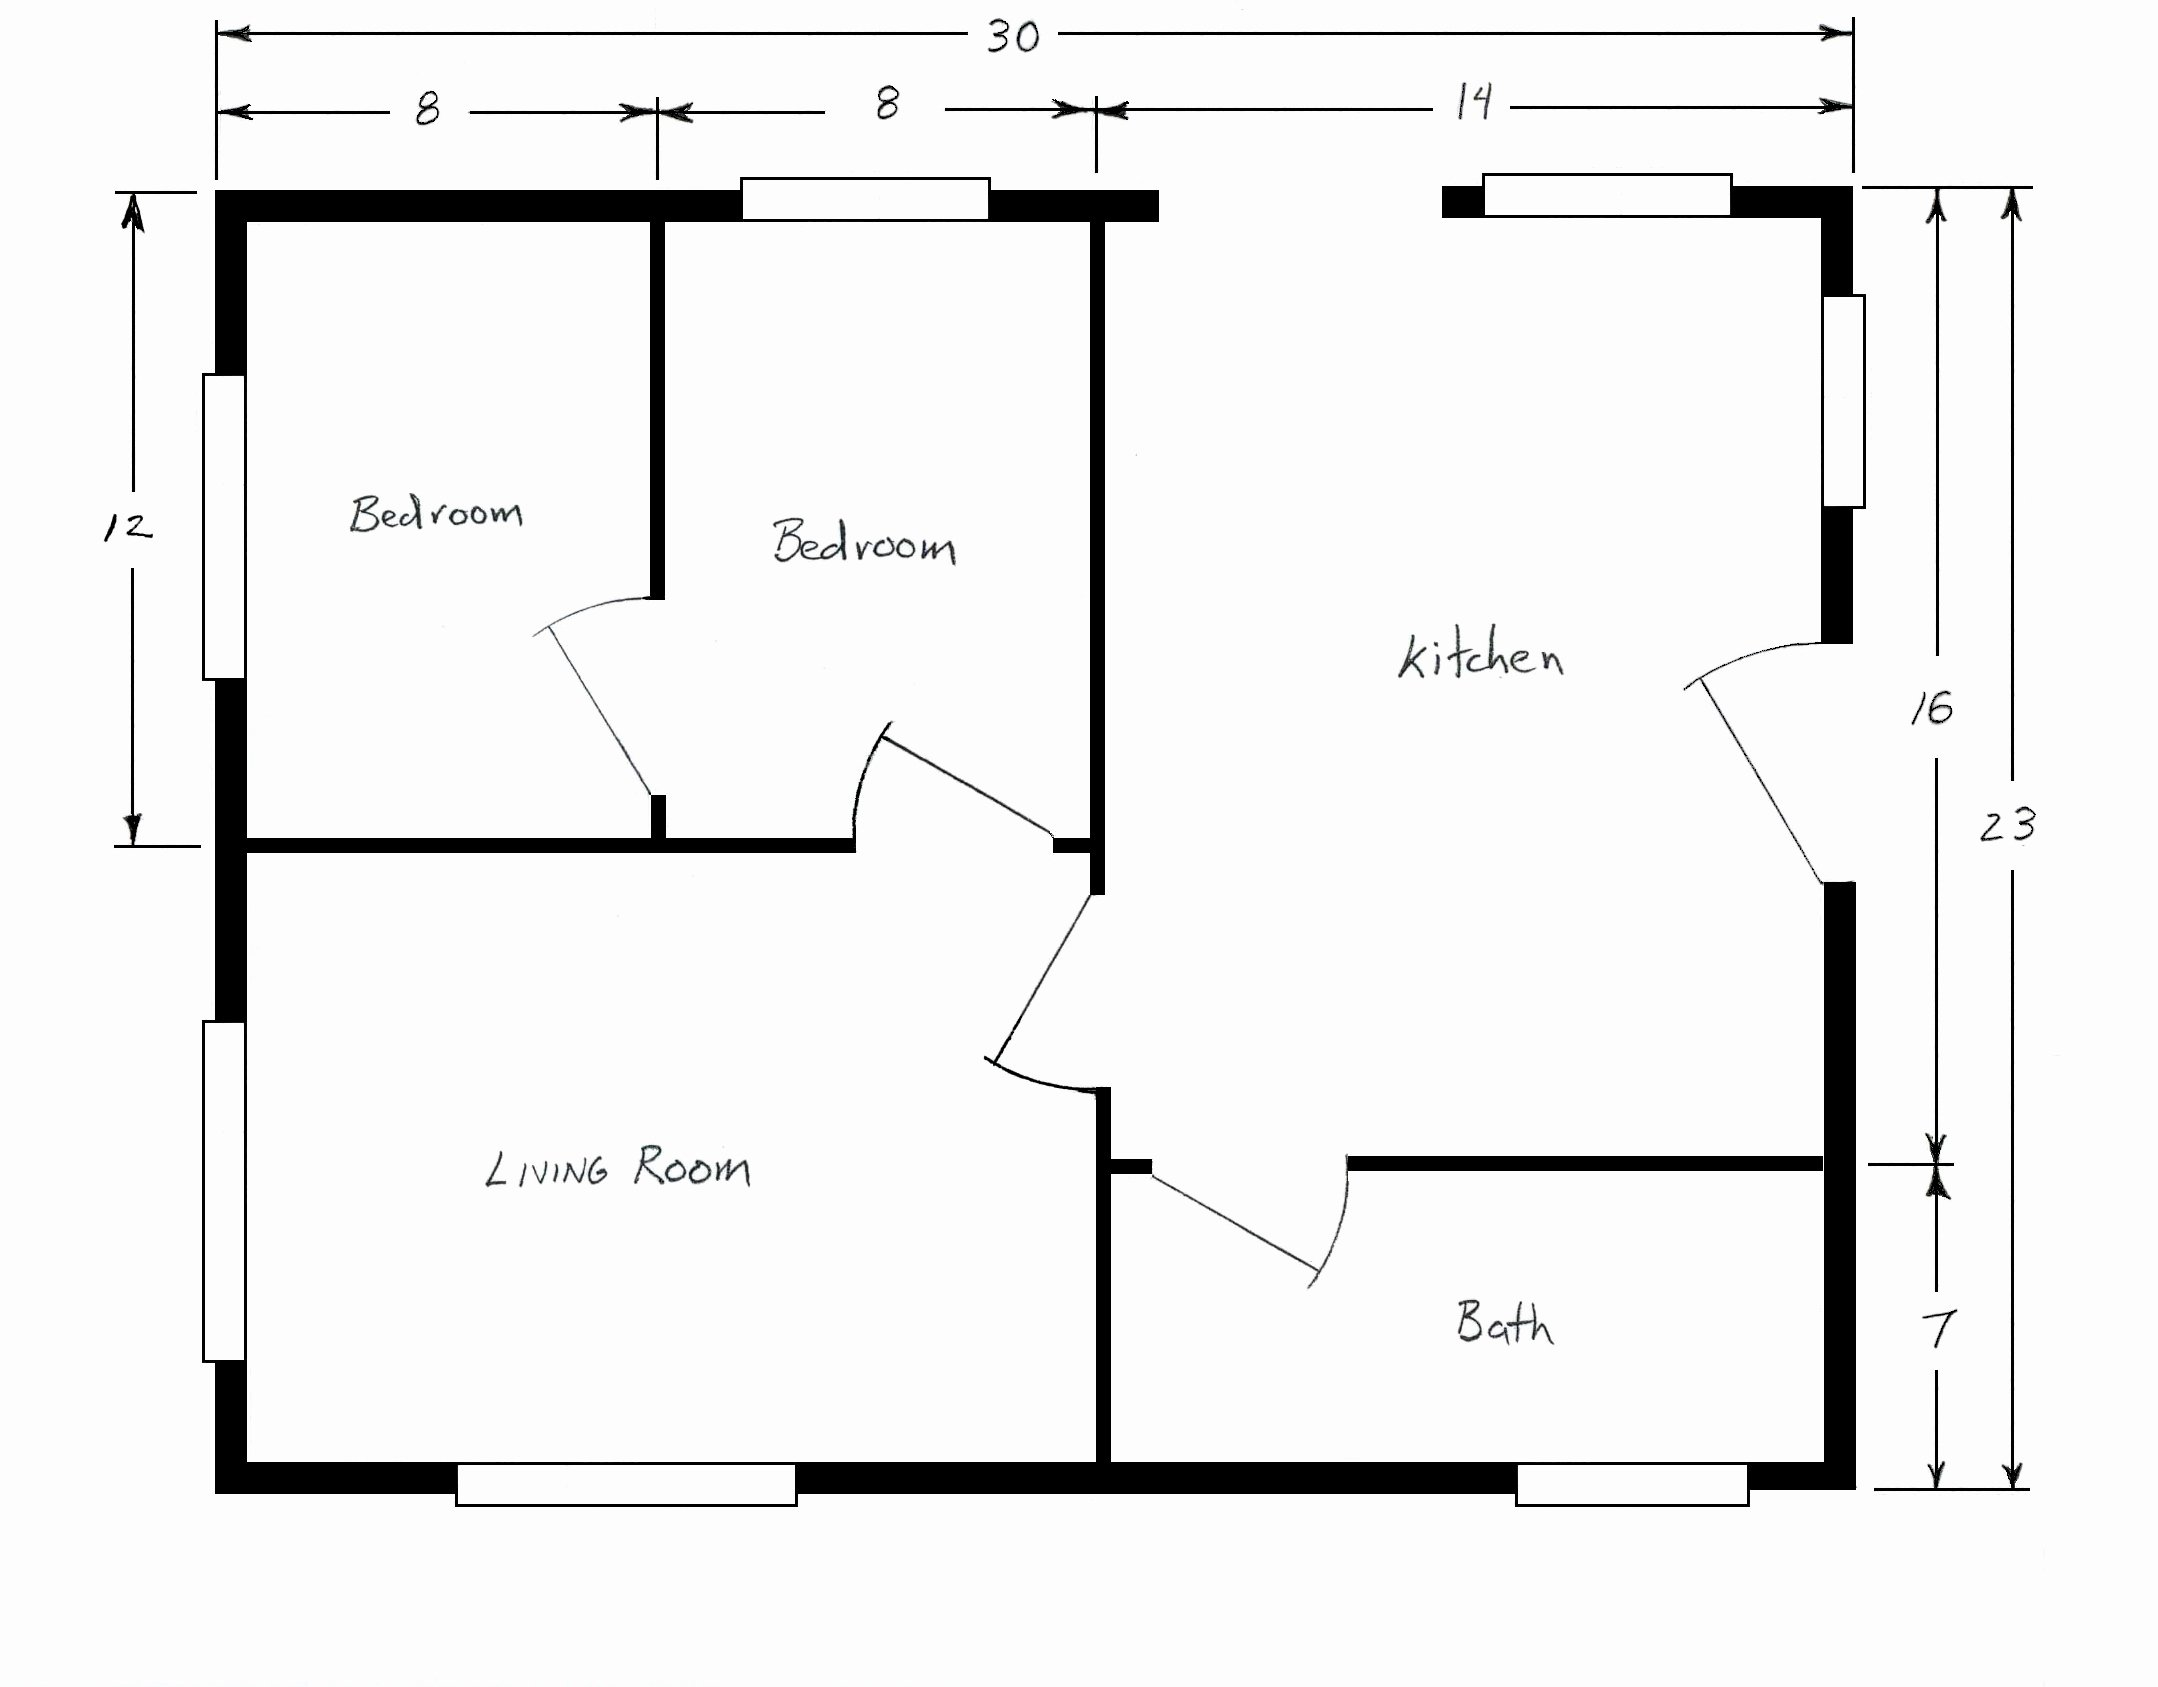 Blank Floor Plan Template Elegant Blank House Template Beautiful Template Design Ideas